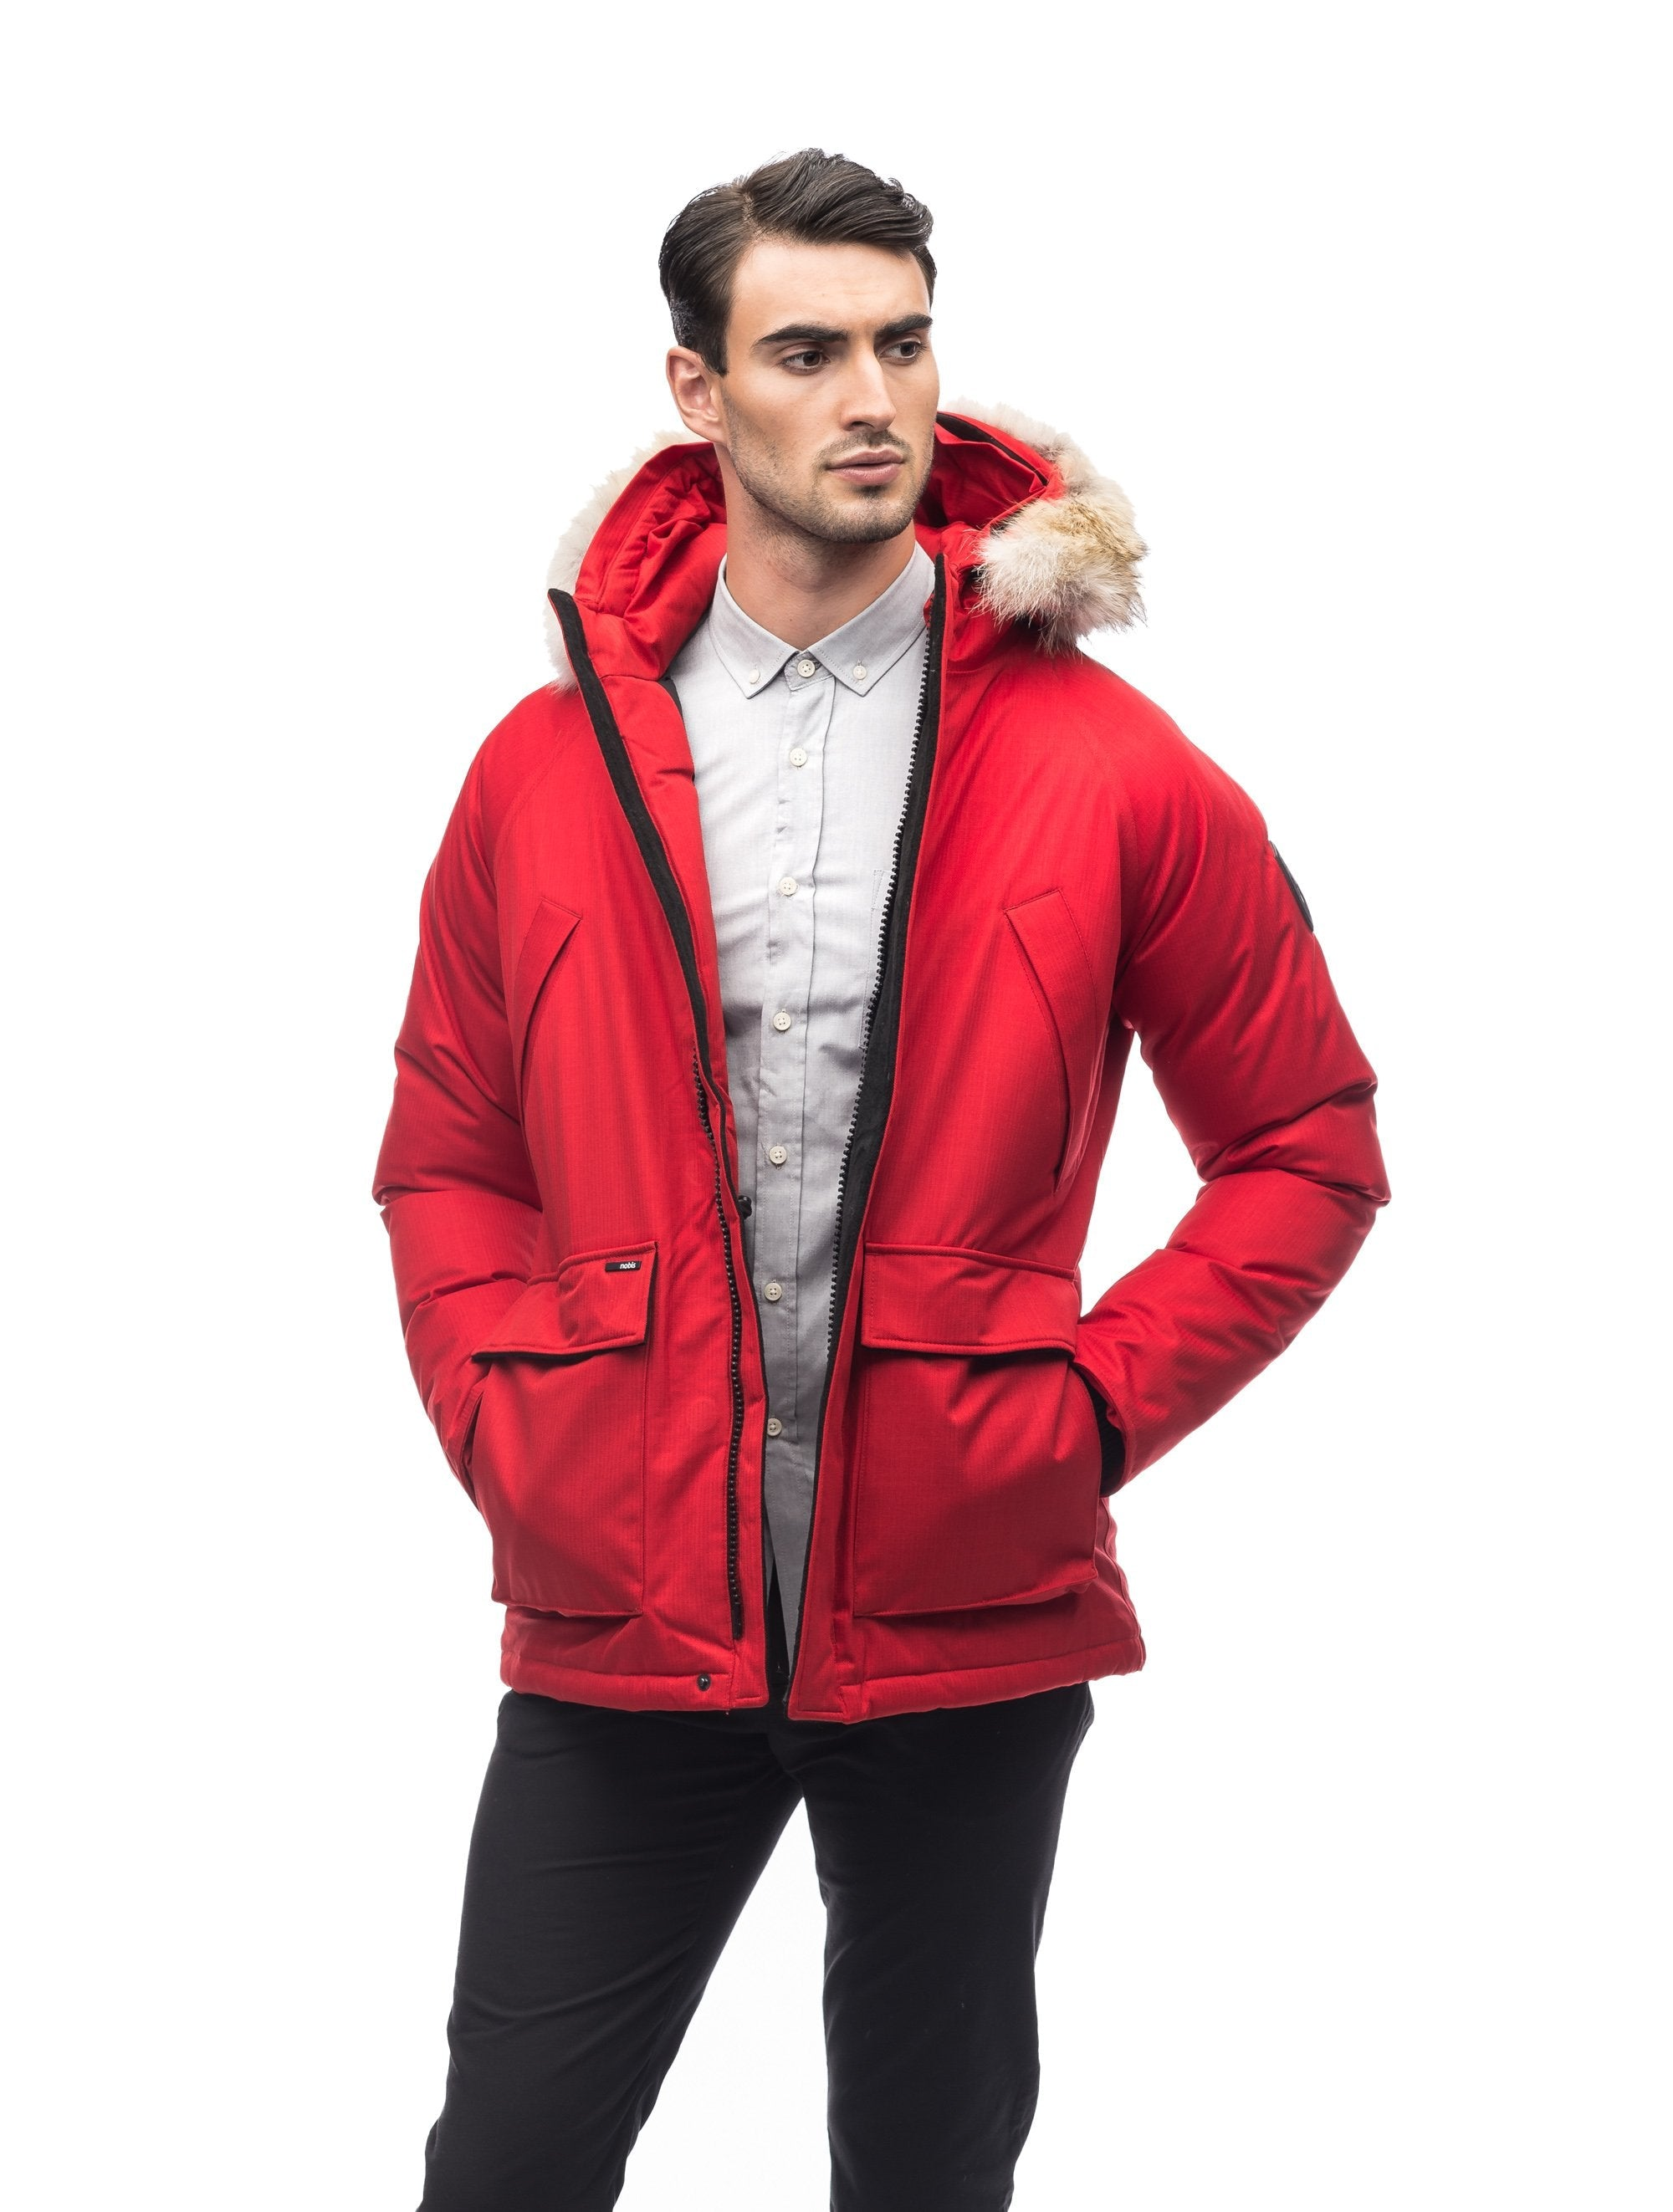 Men's waist length down filled jacket with two front pockets with magnetic closure and a removable fur trim on the hood in CH Red | color